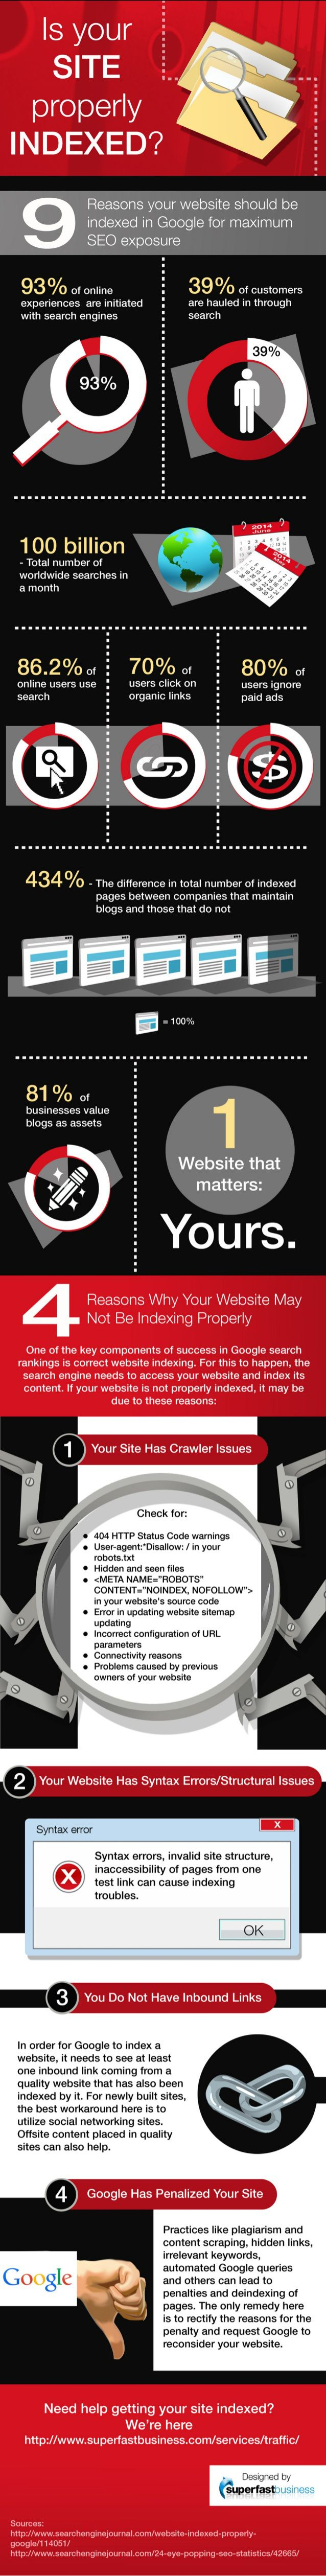 Is your site properly indexed? #SEO #infographic #DigitalFreak